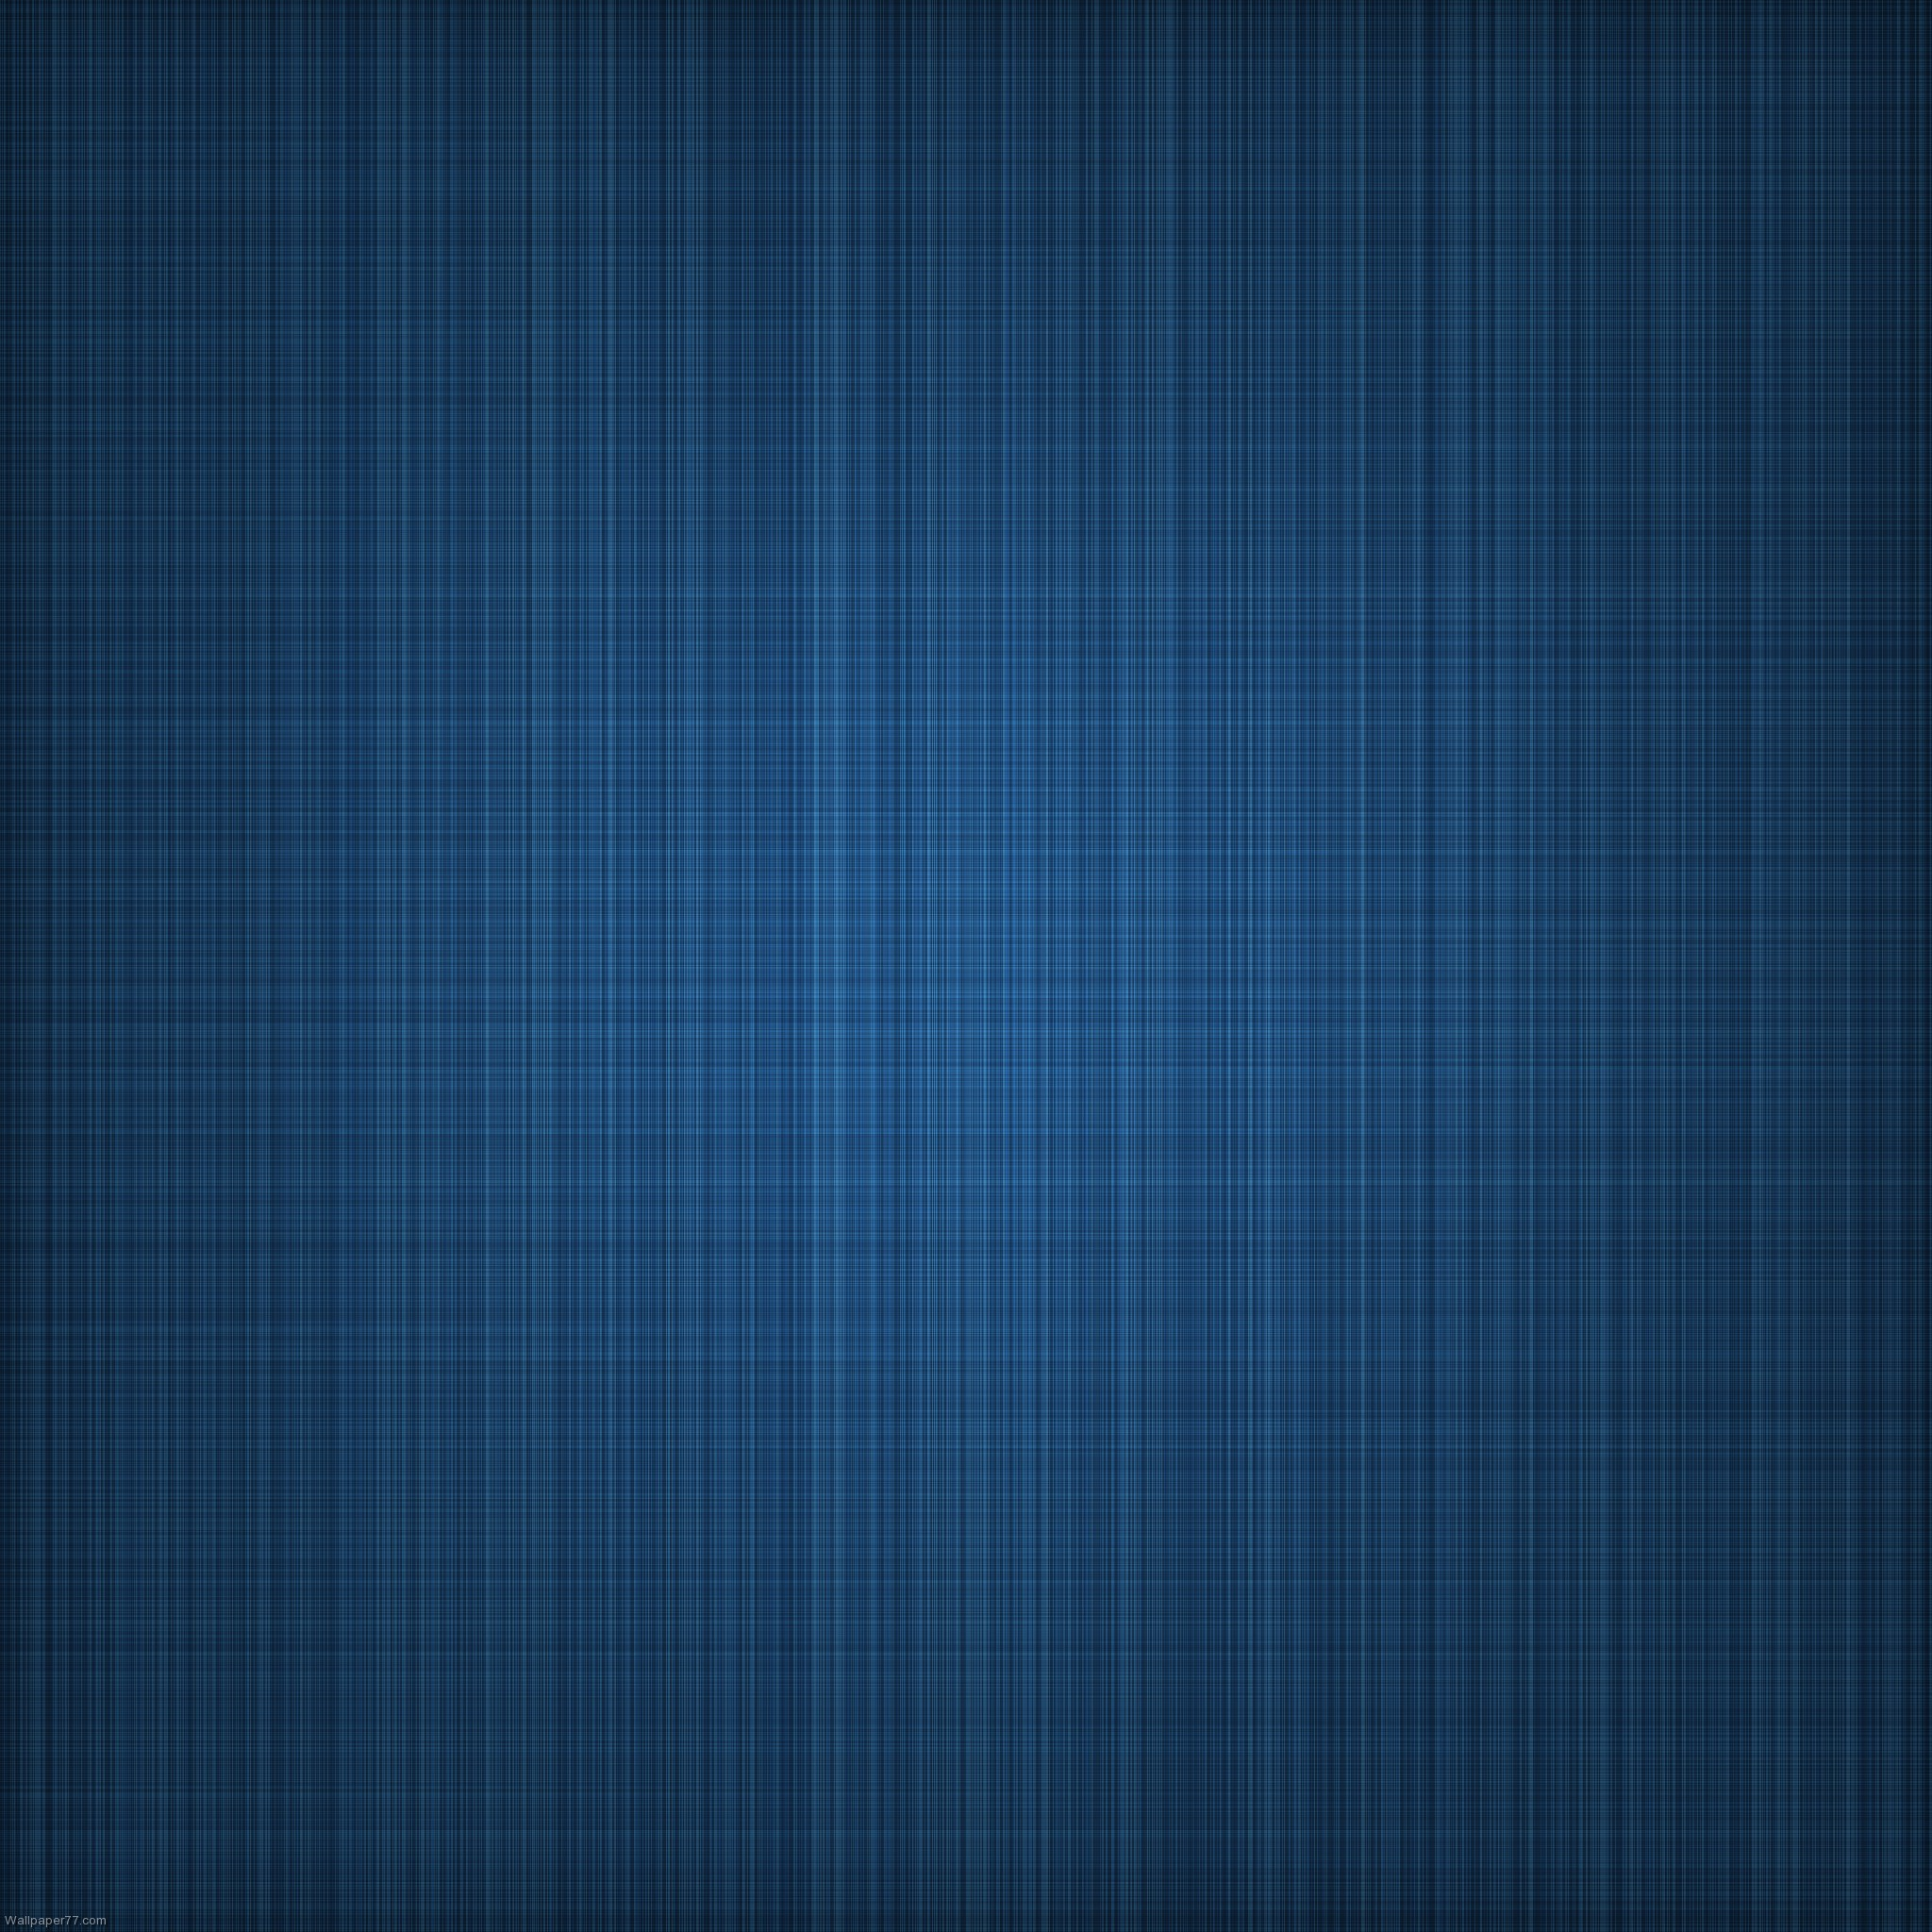 Abstract Ipad Wallpaper Retina 2048 Wallpaper